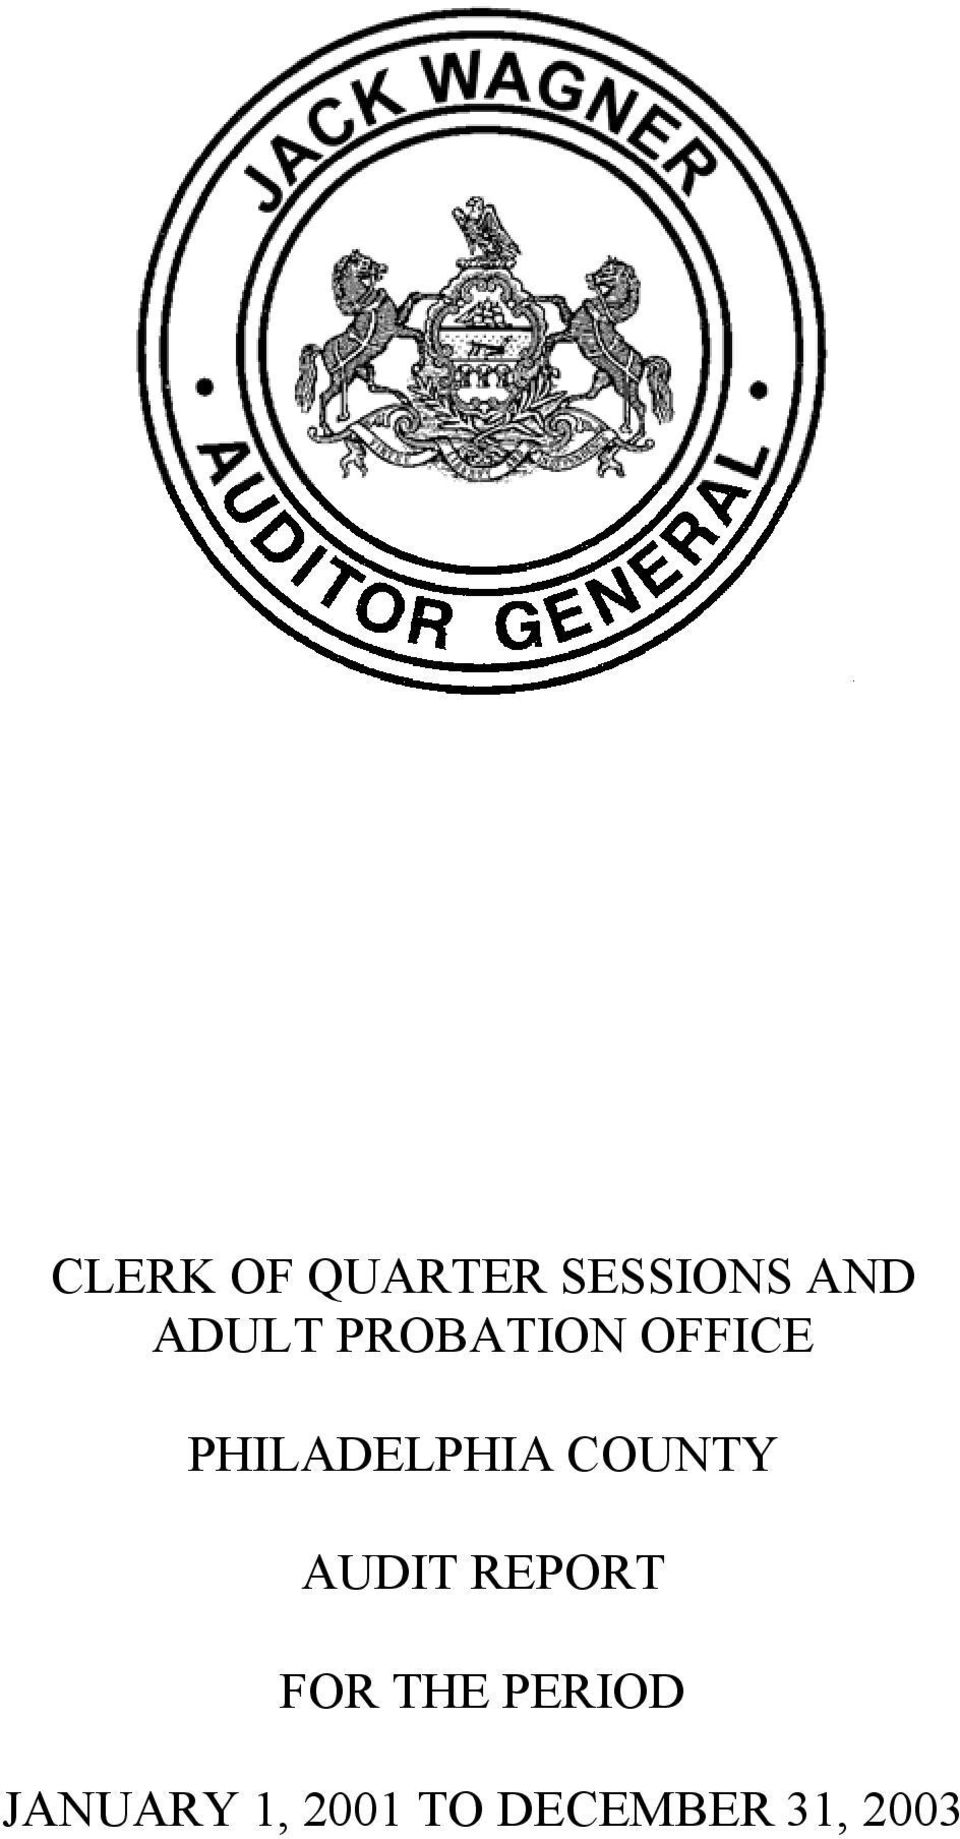 CLERK OF QUARTER SESSIONS AND ADULT PROBATION OFFICE - PDF